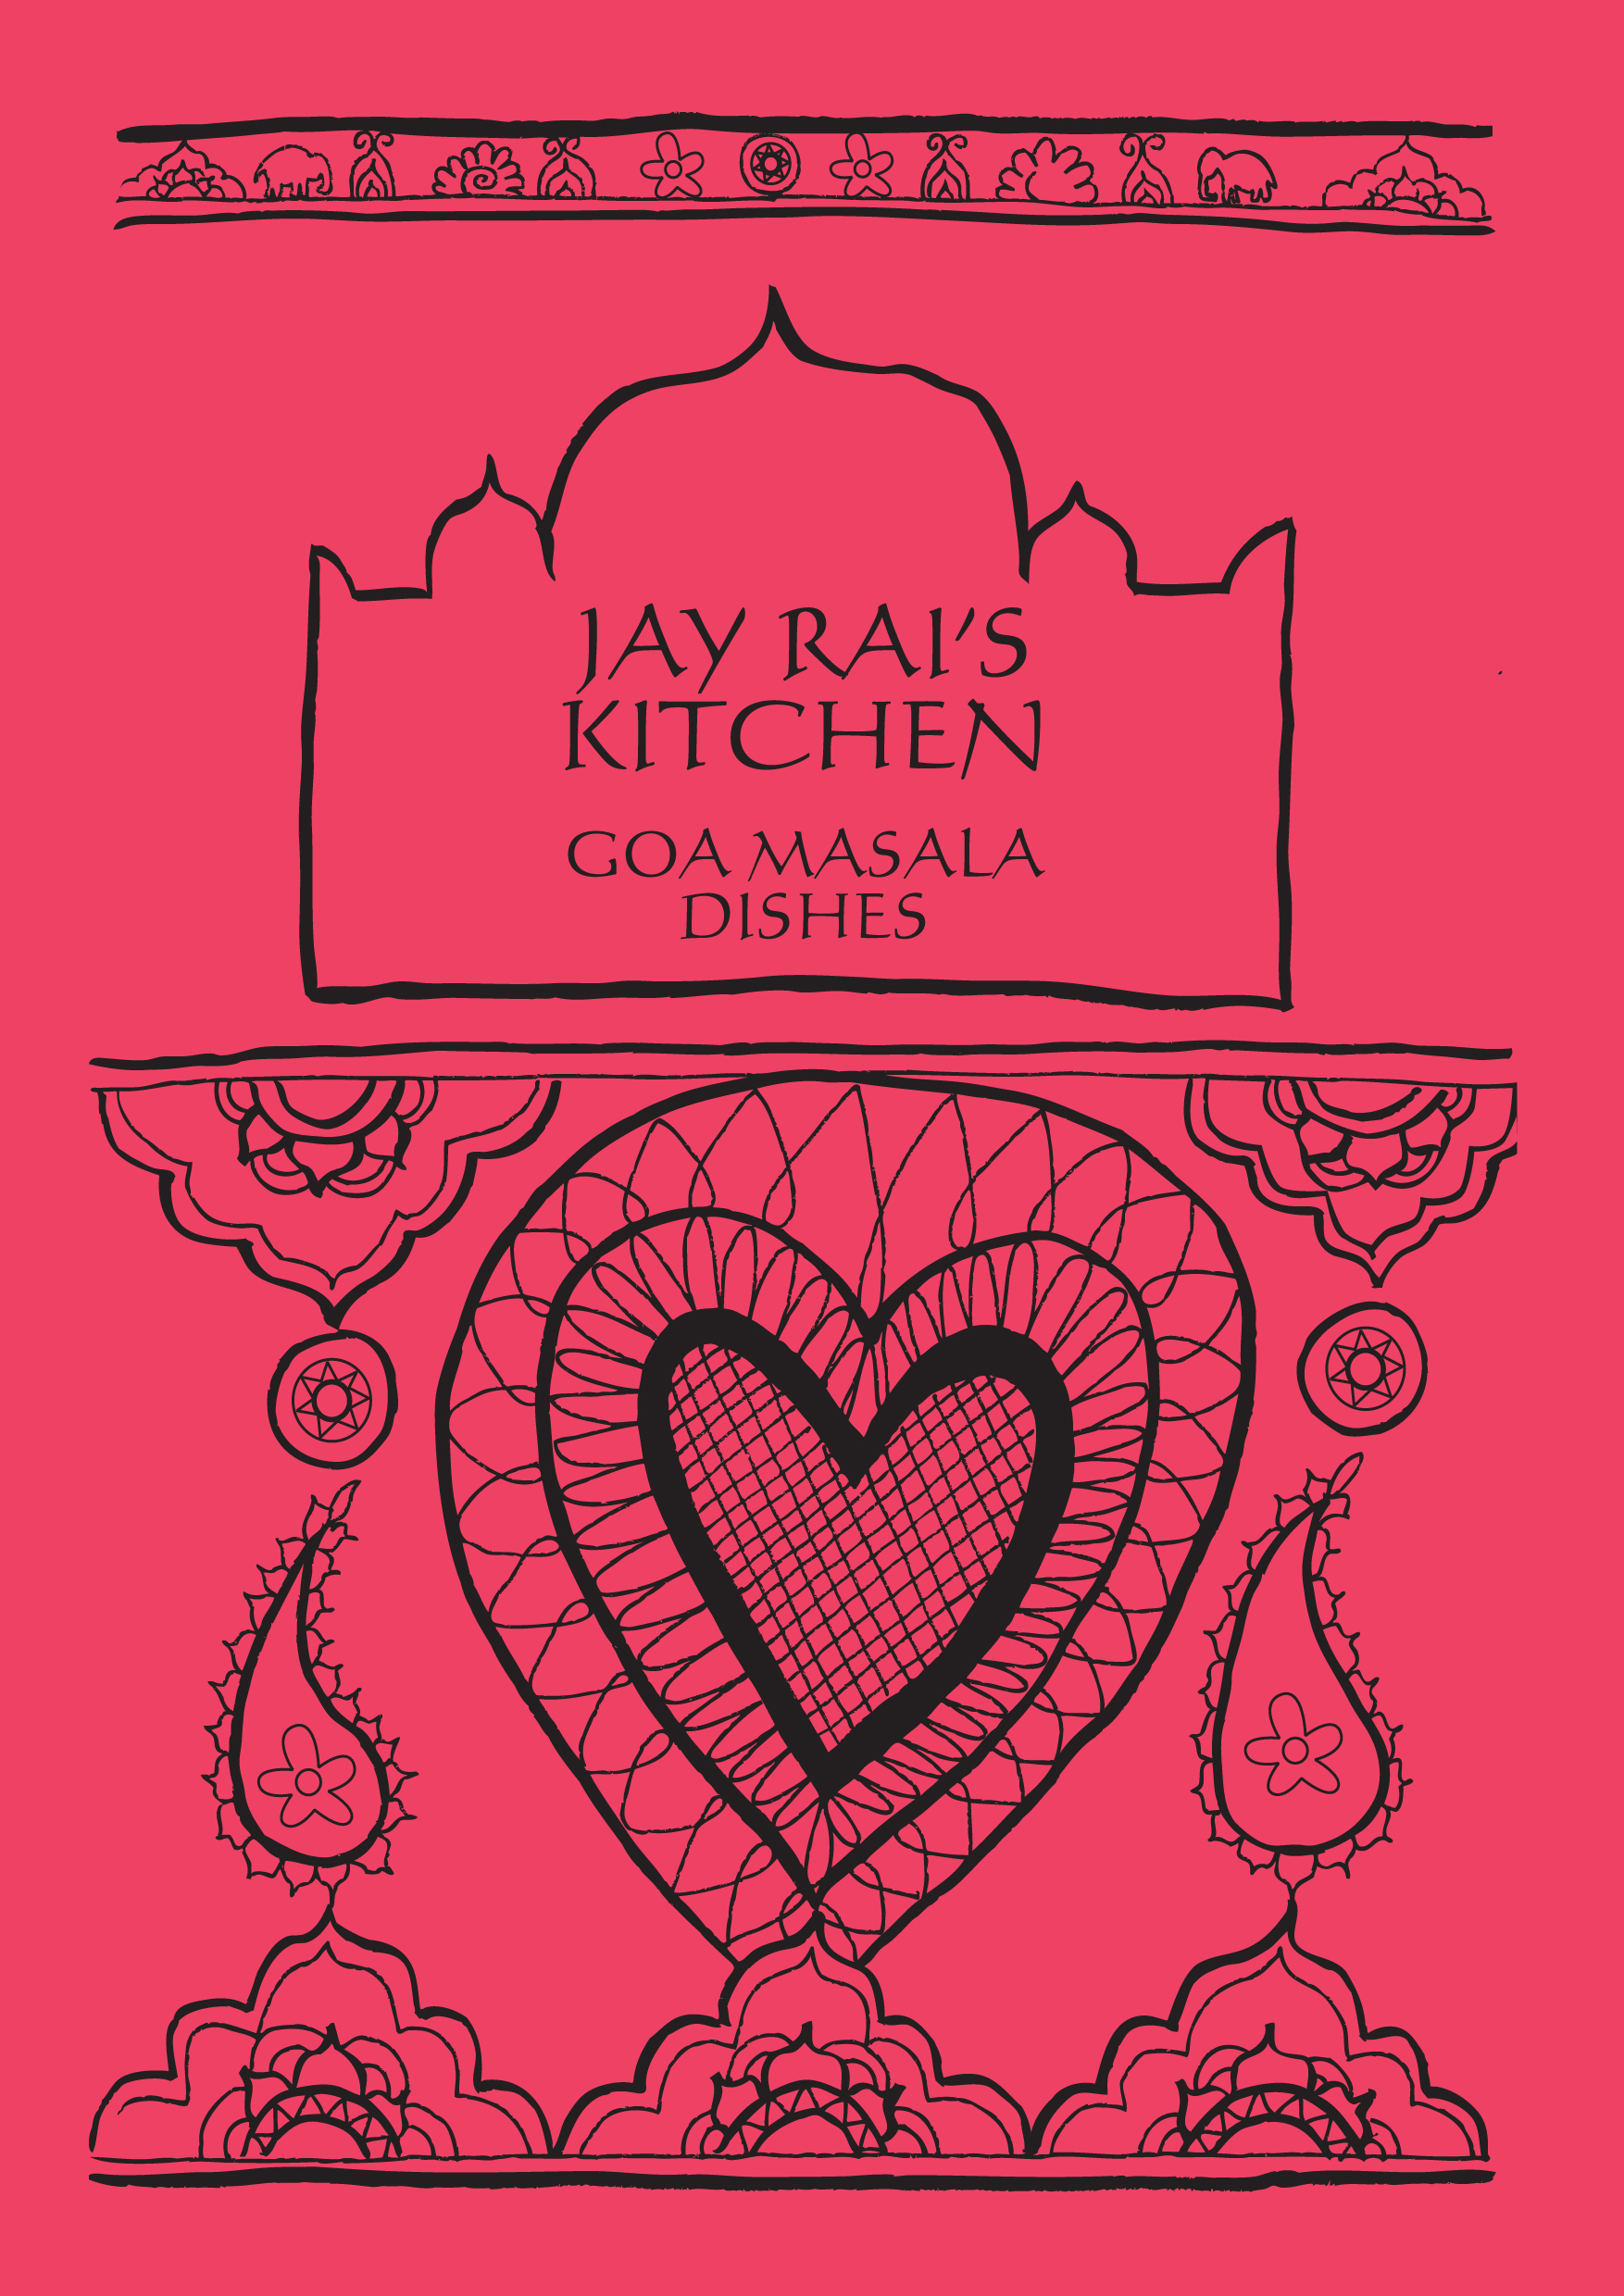 Jay Rai's Kitchen: Goan Masala Dishes